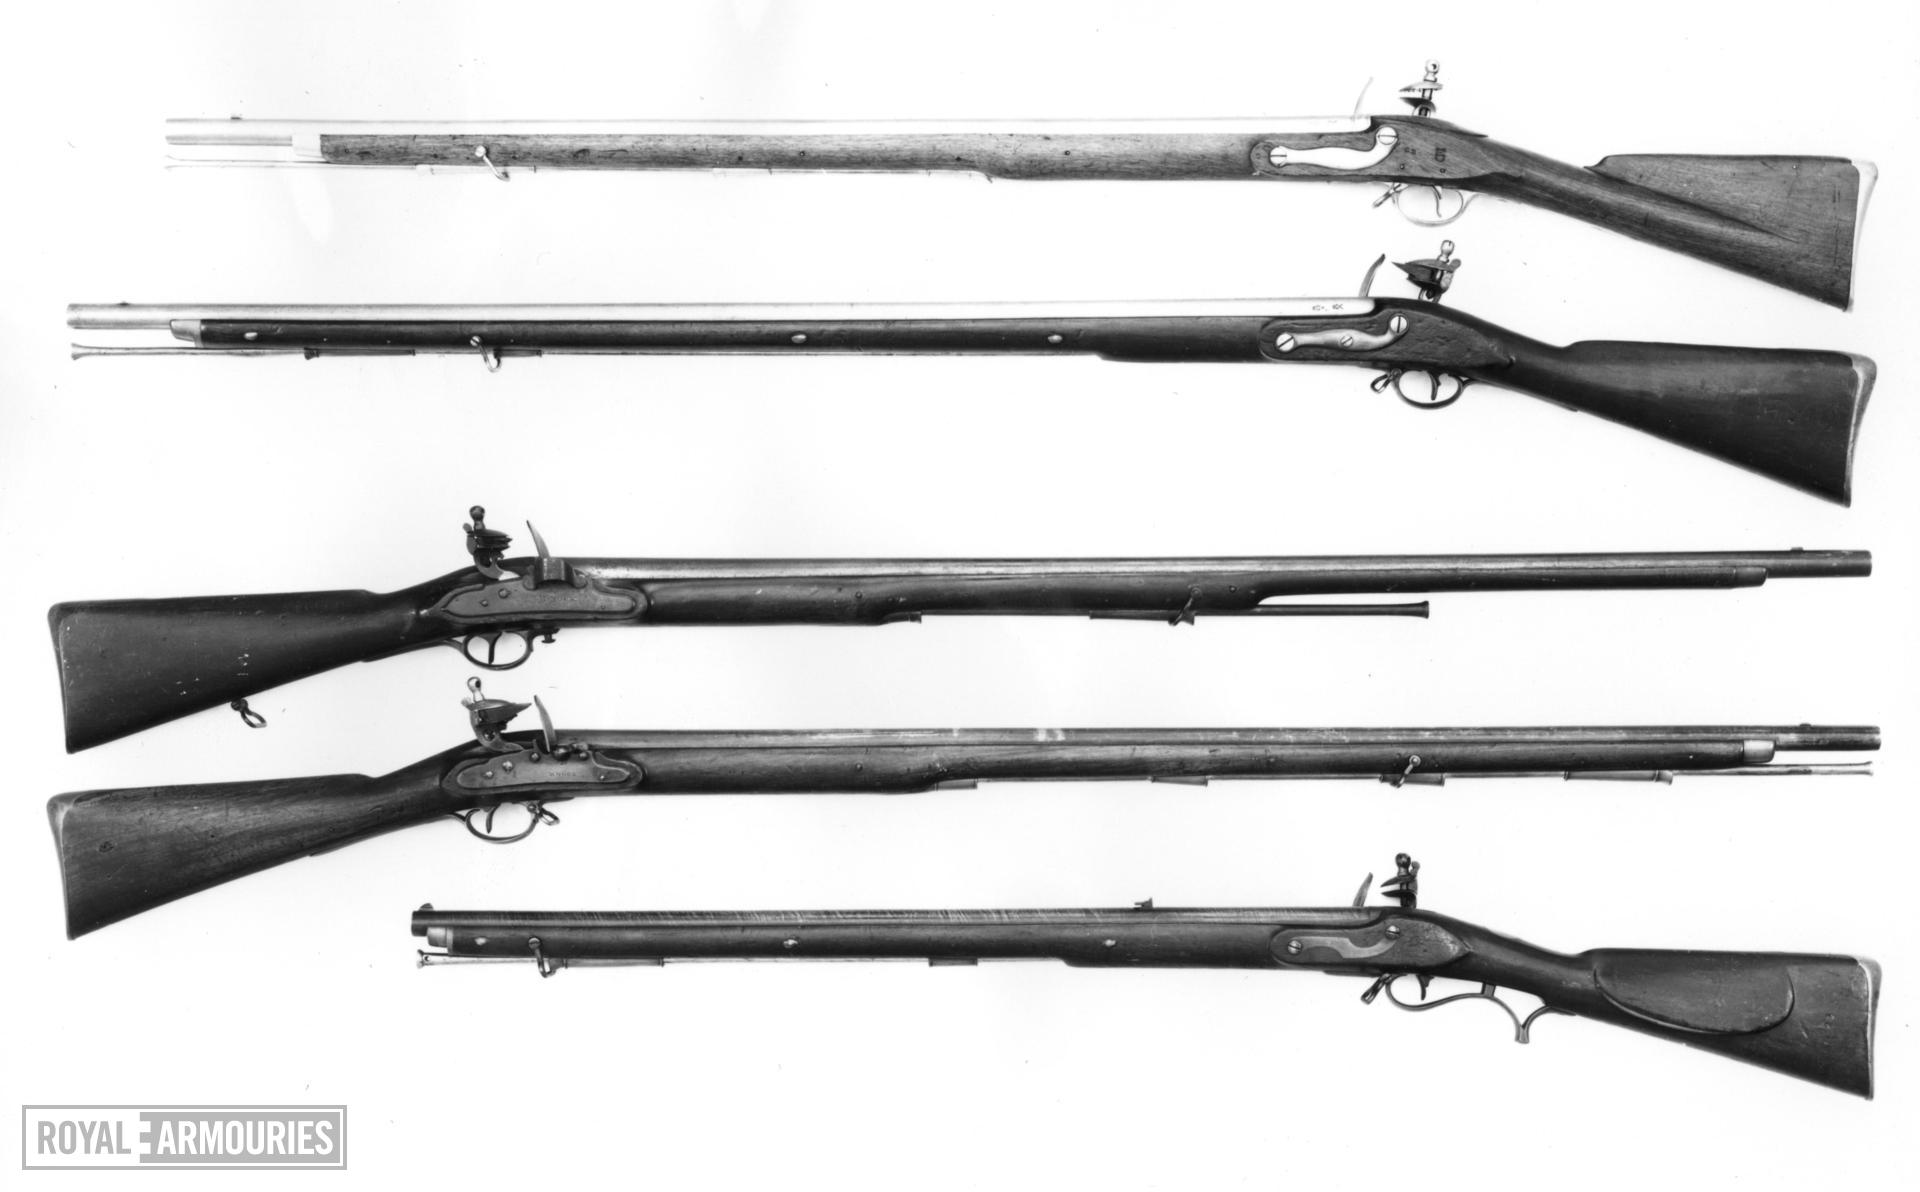 Flintlock muzzle-loading military musket - Duke of Richmond's 2nd Model Rammer to butt with standard Nock lock